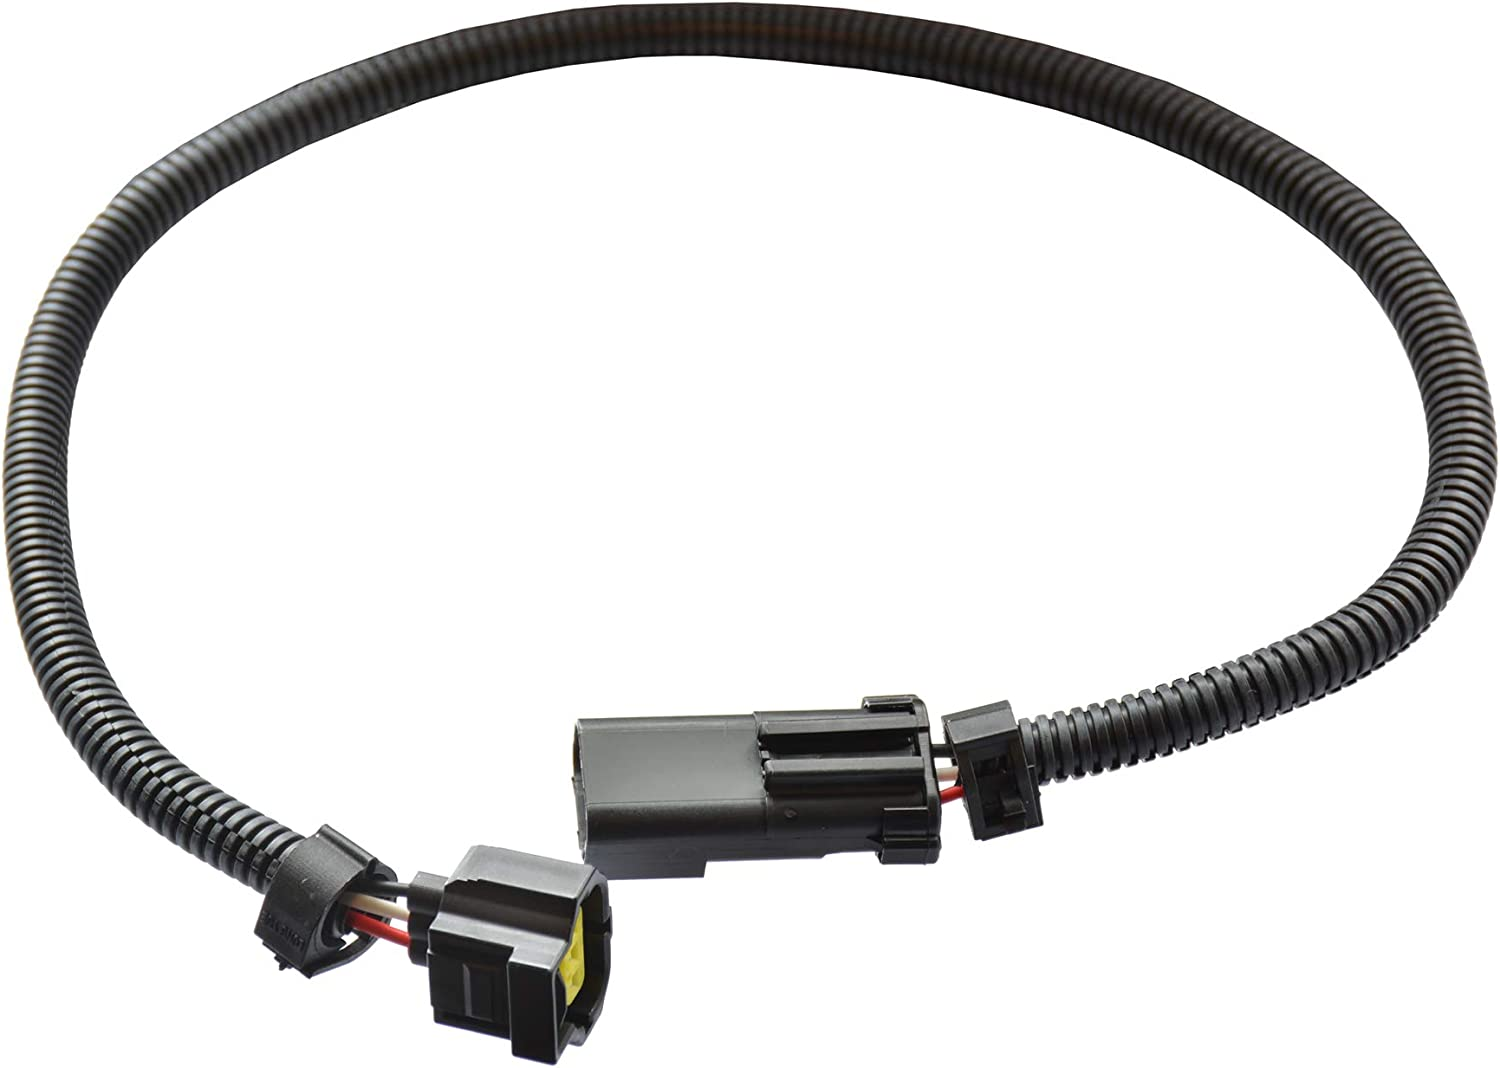 2001 Jeep Grand Cherokee Wiring Harness from images-na.ssl-images-amazon.com